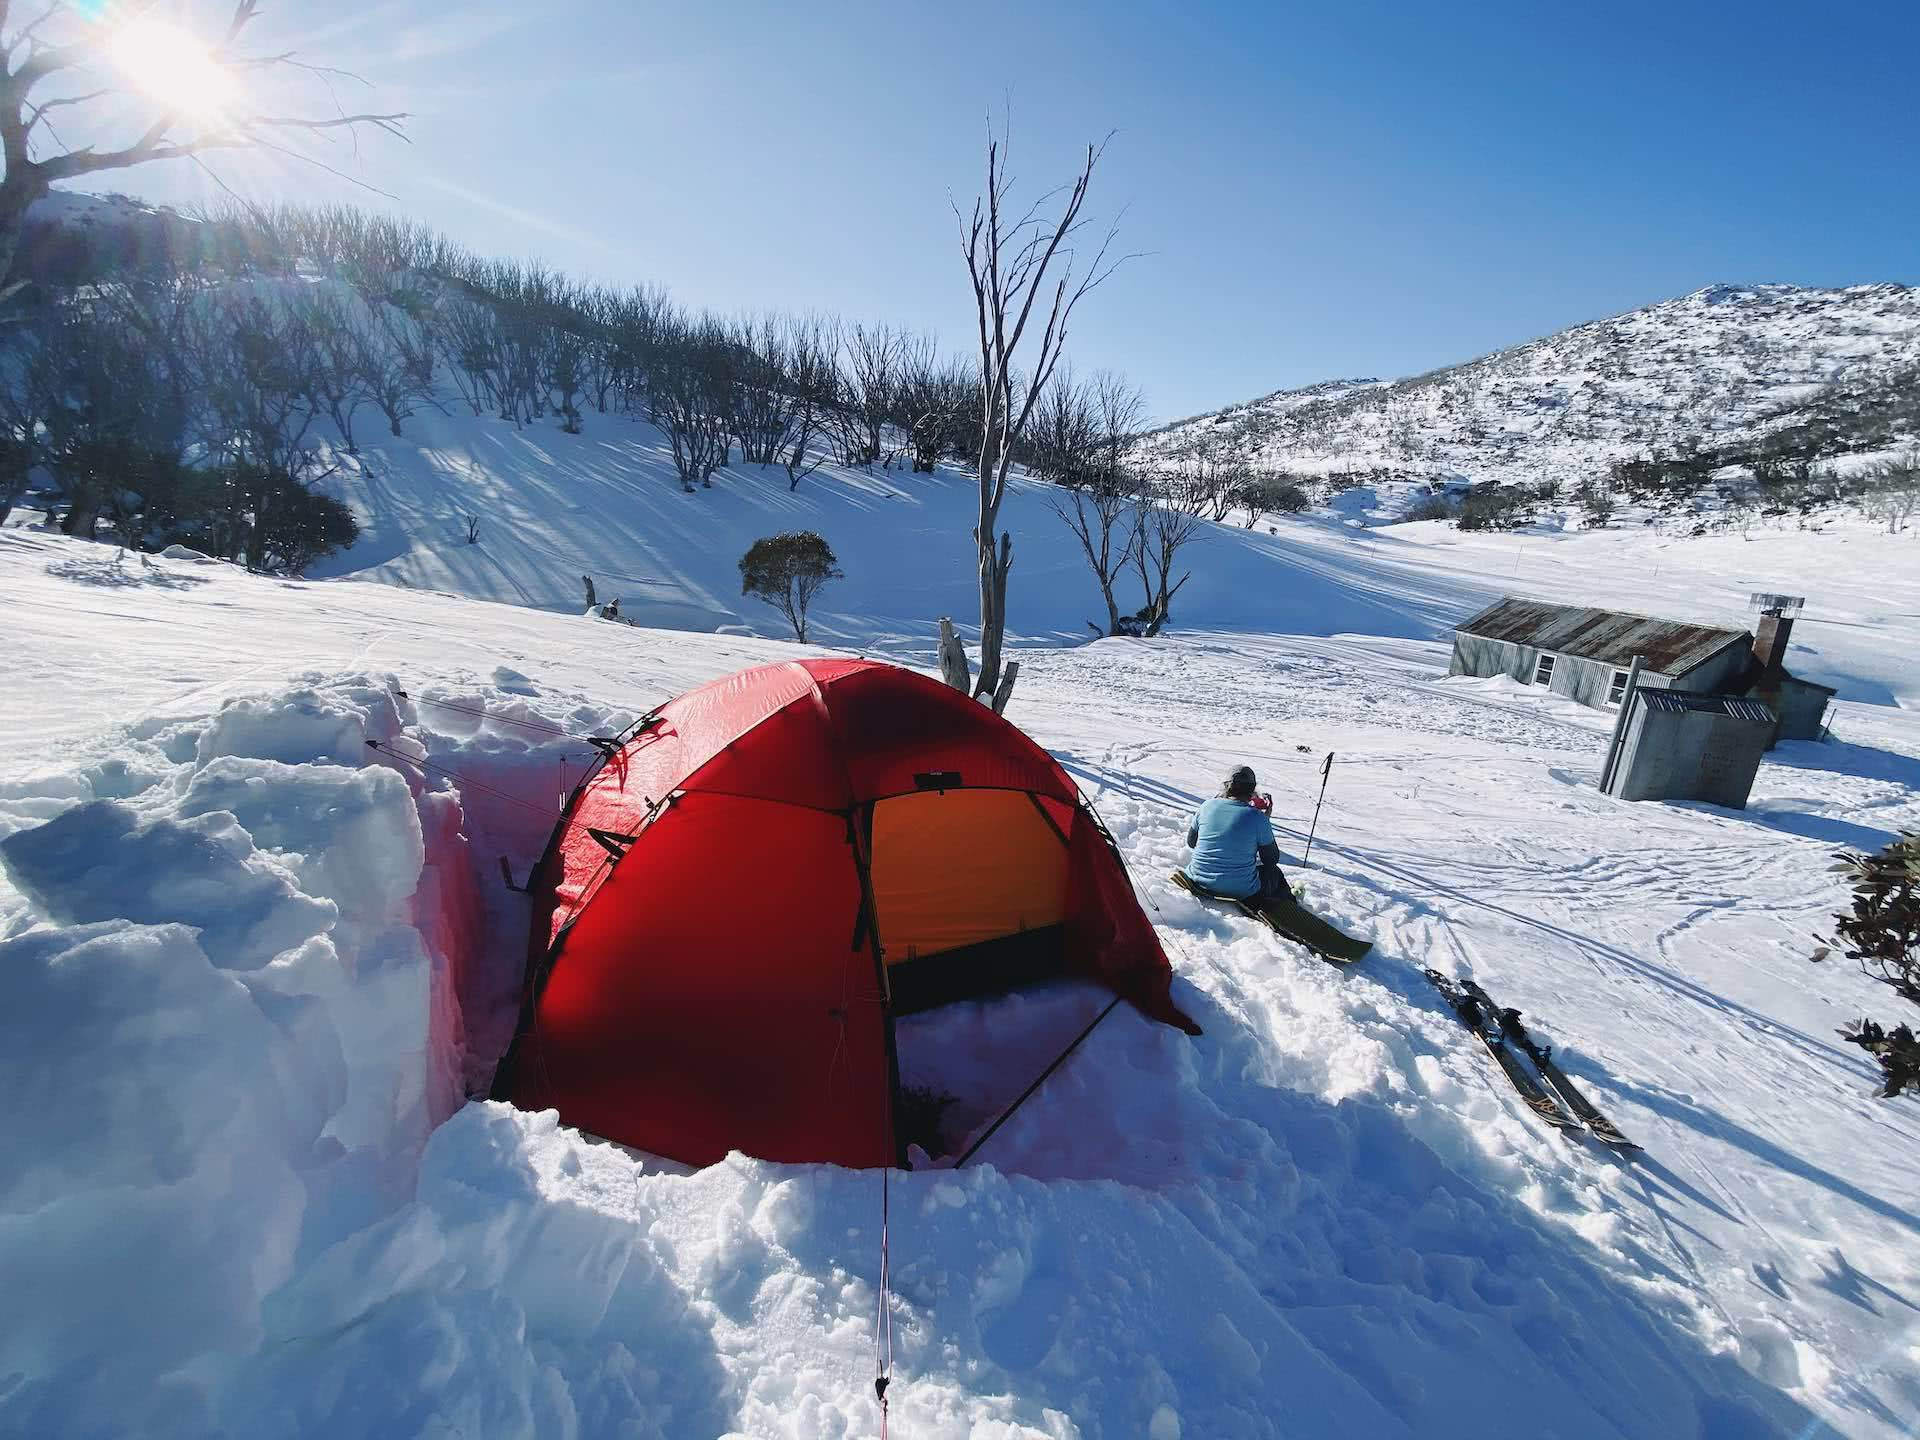 A Beginner's Guide to snow camping, Kate Donald, kosciuszko, jagungal, tent, snow, backcountry, nsw, whites river hut